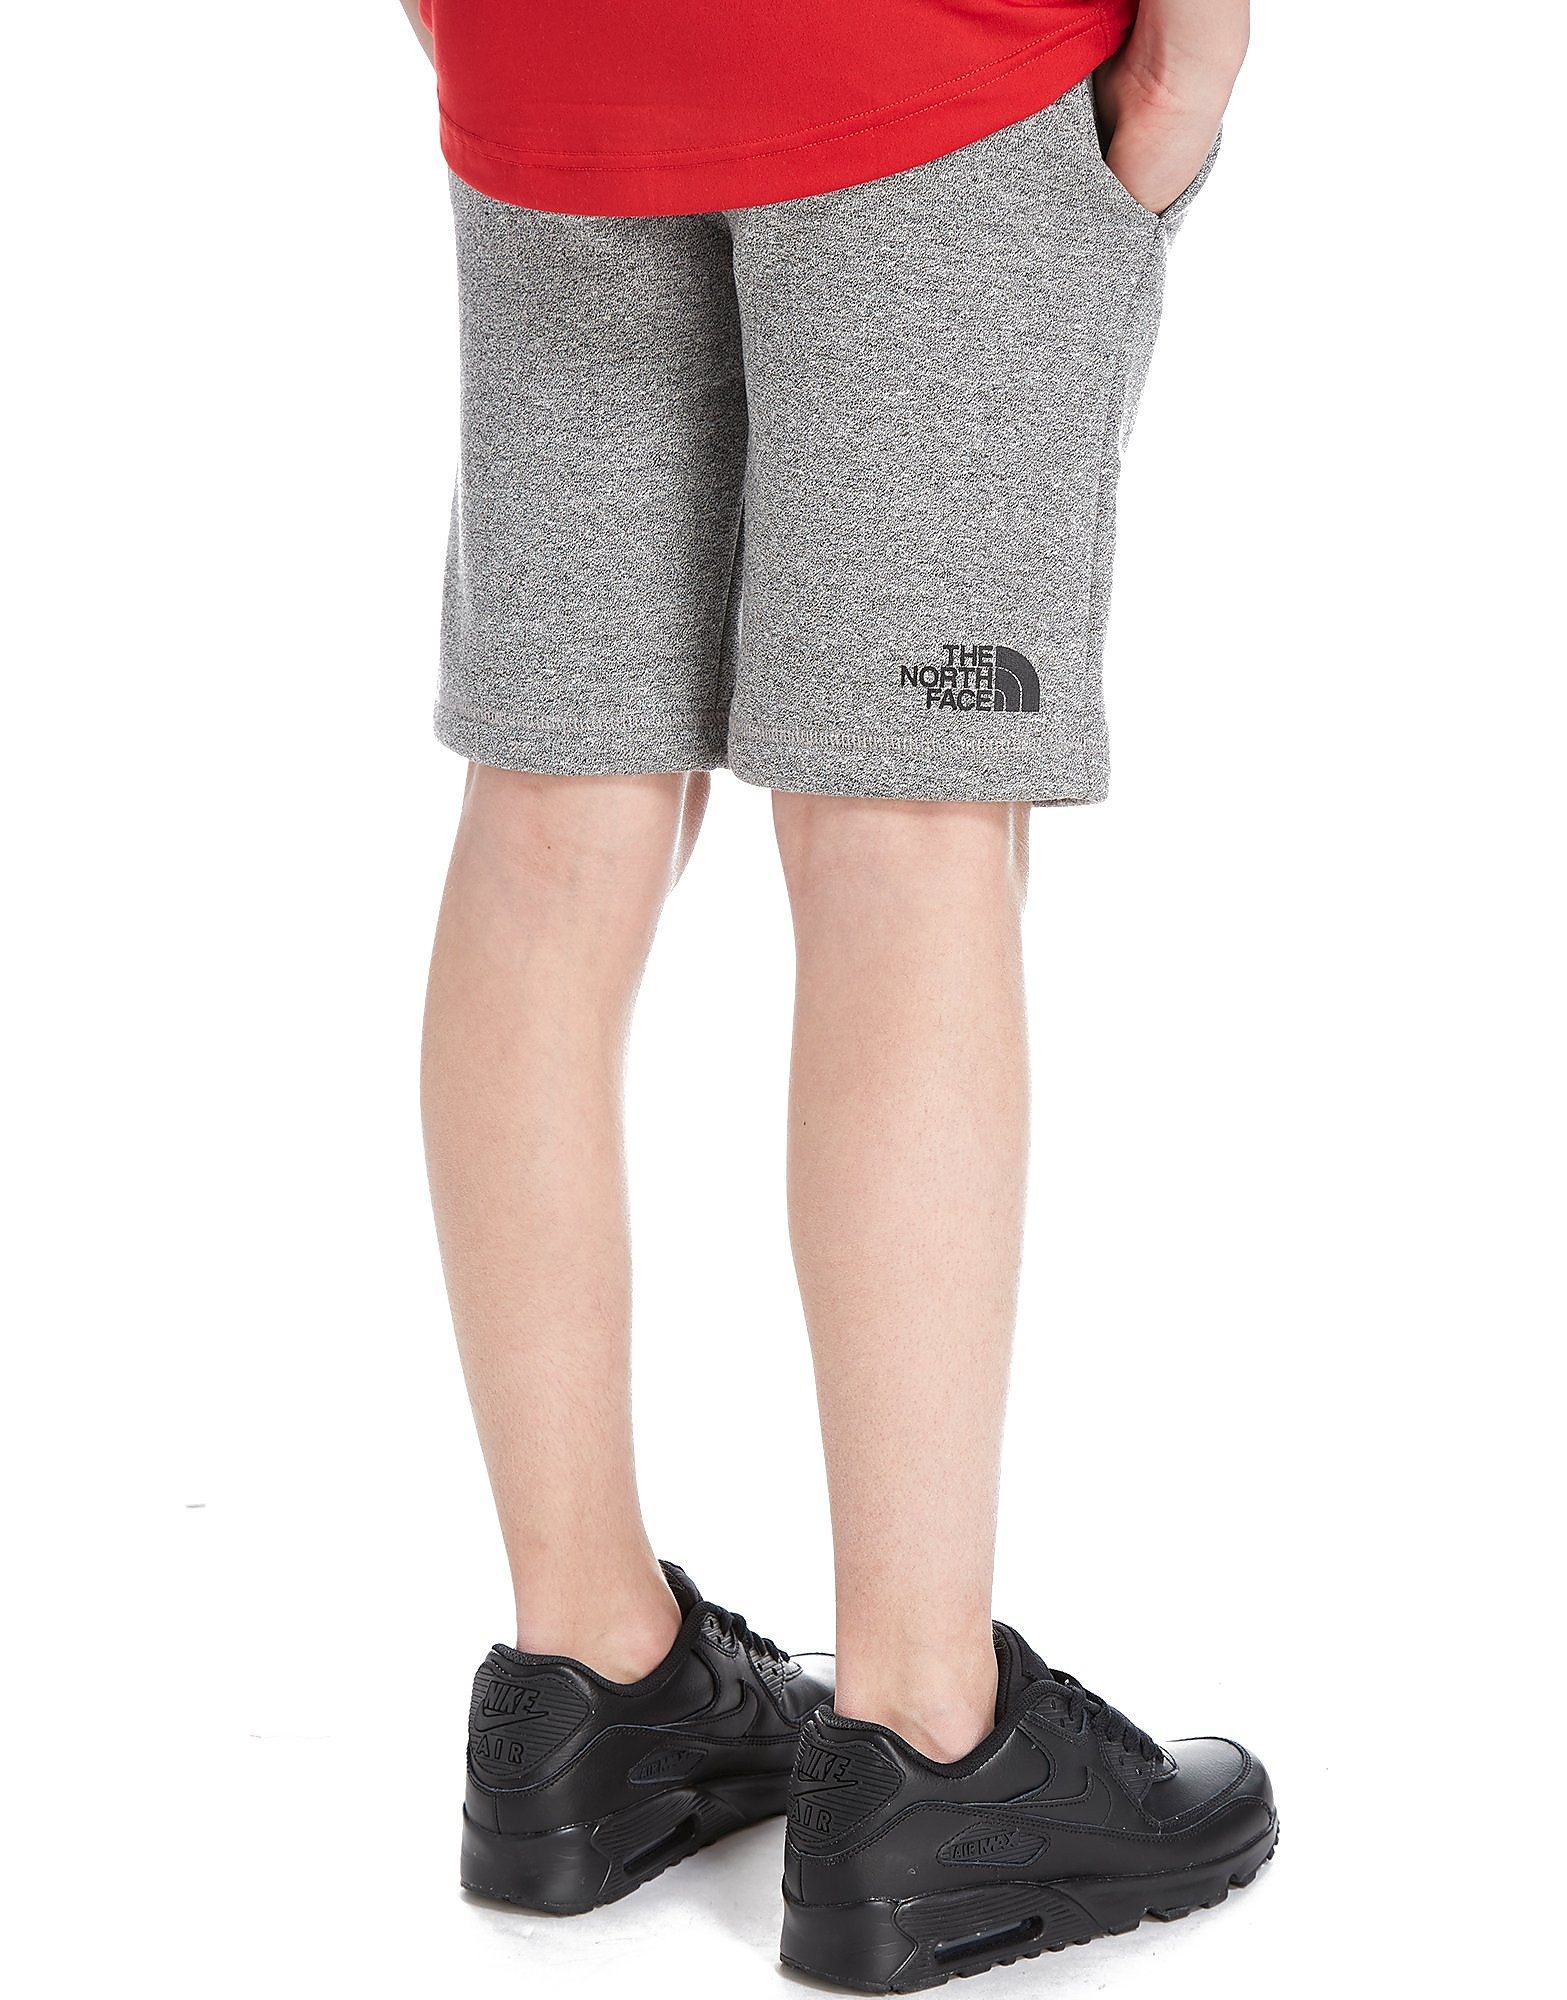 The North Face Drew Peak Shorts Junior